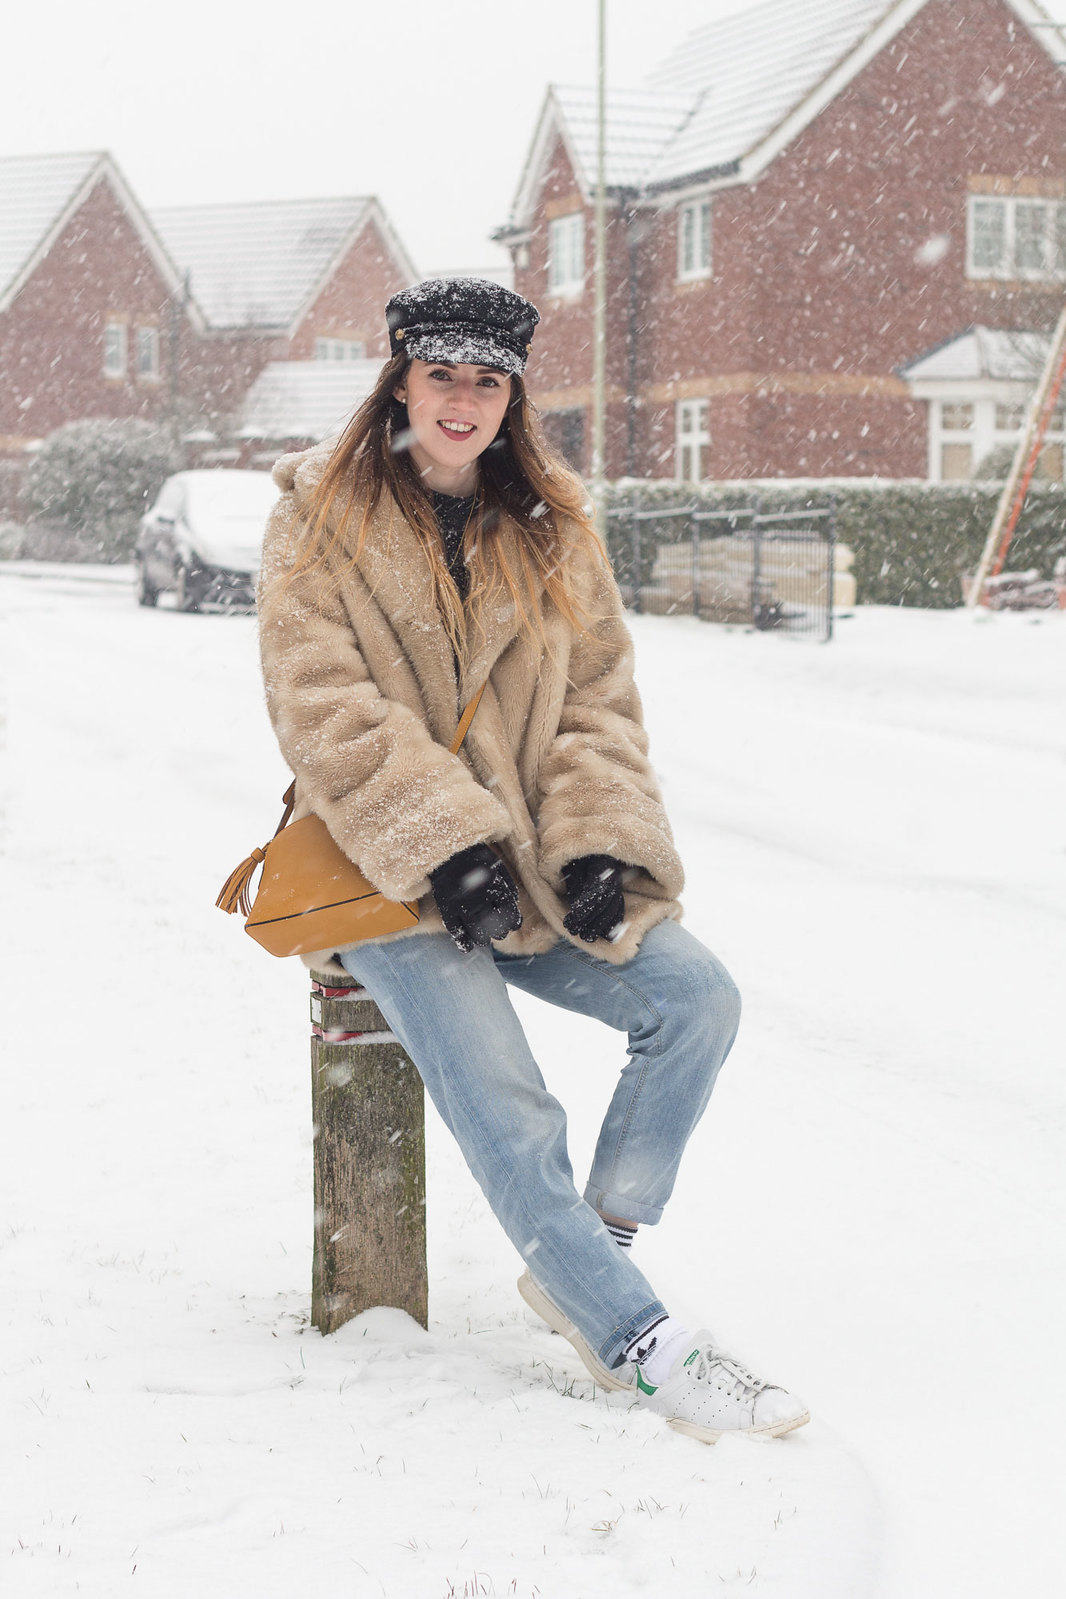 Fur-Coat-Snow-31